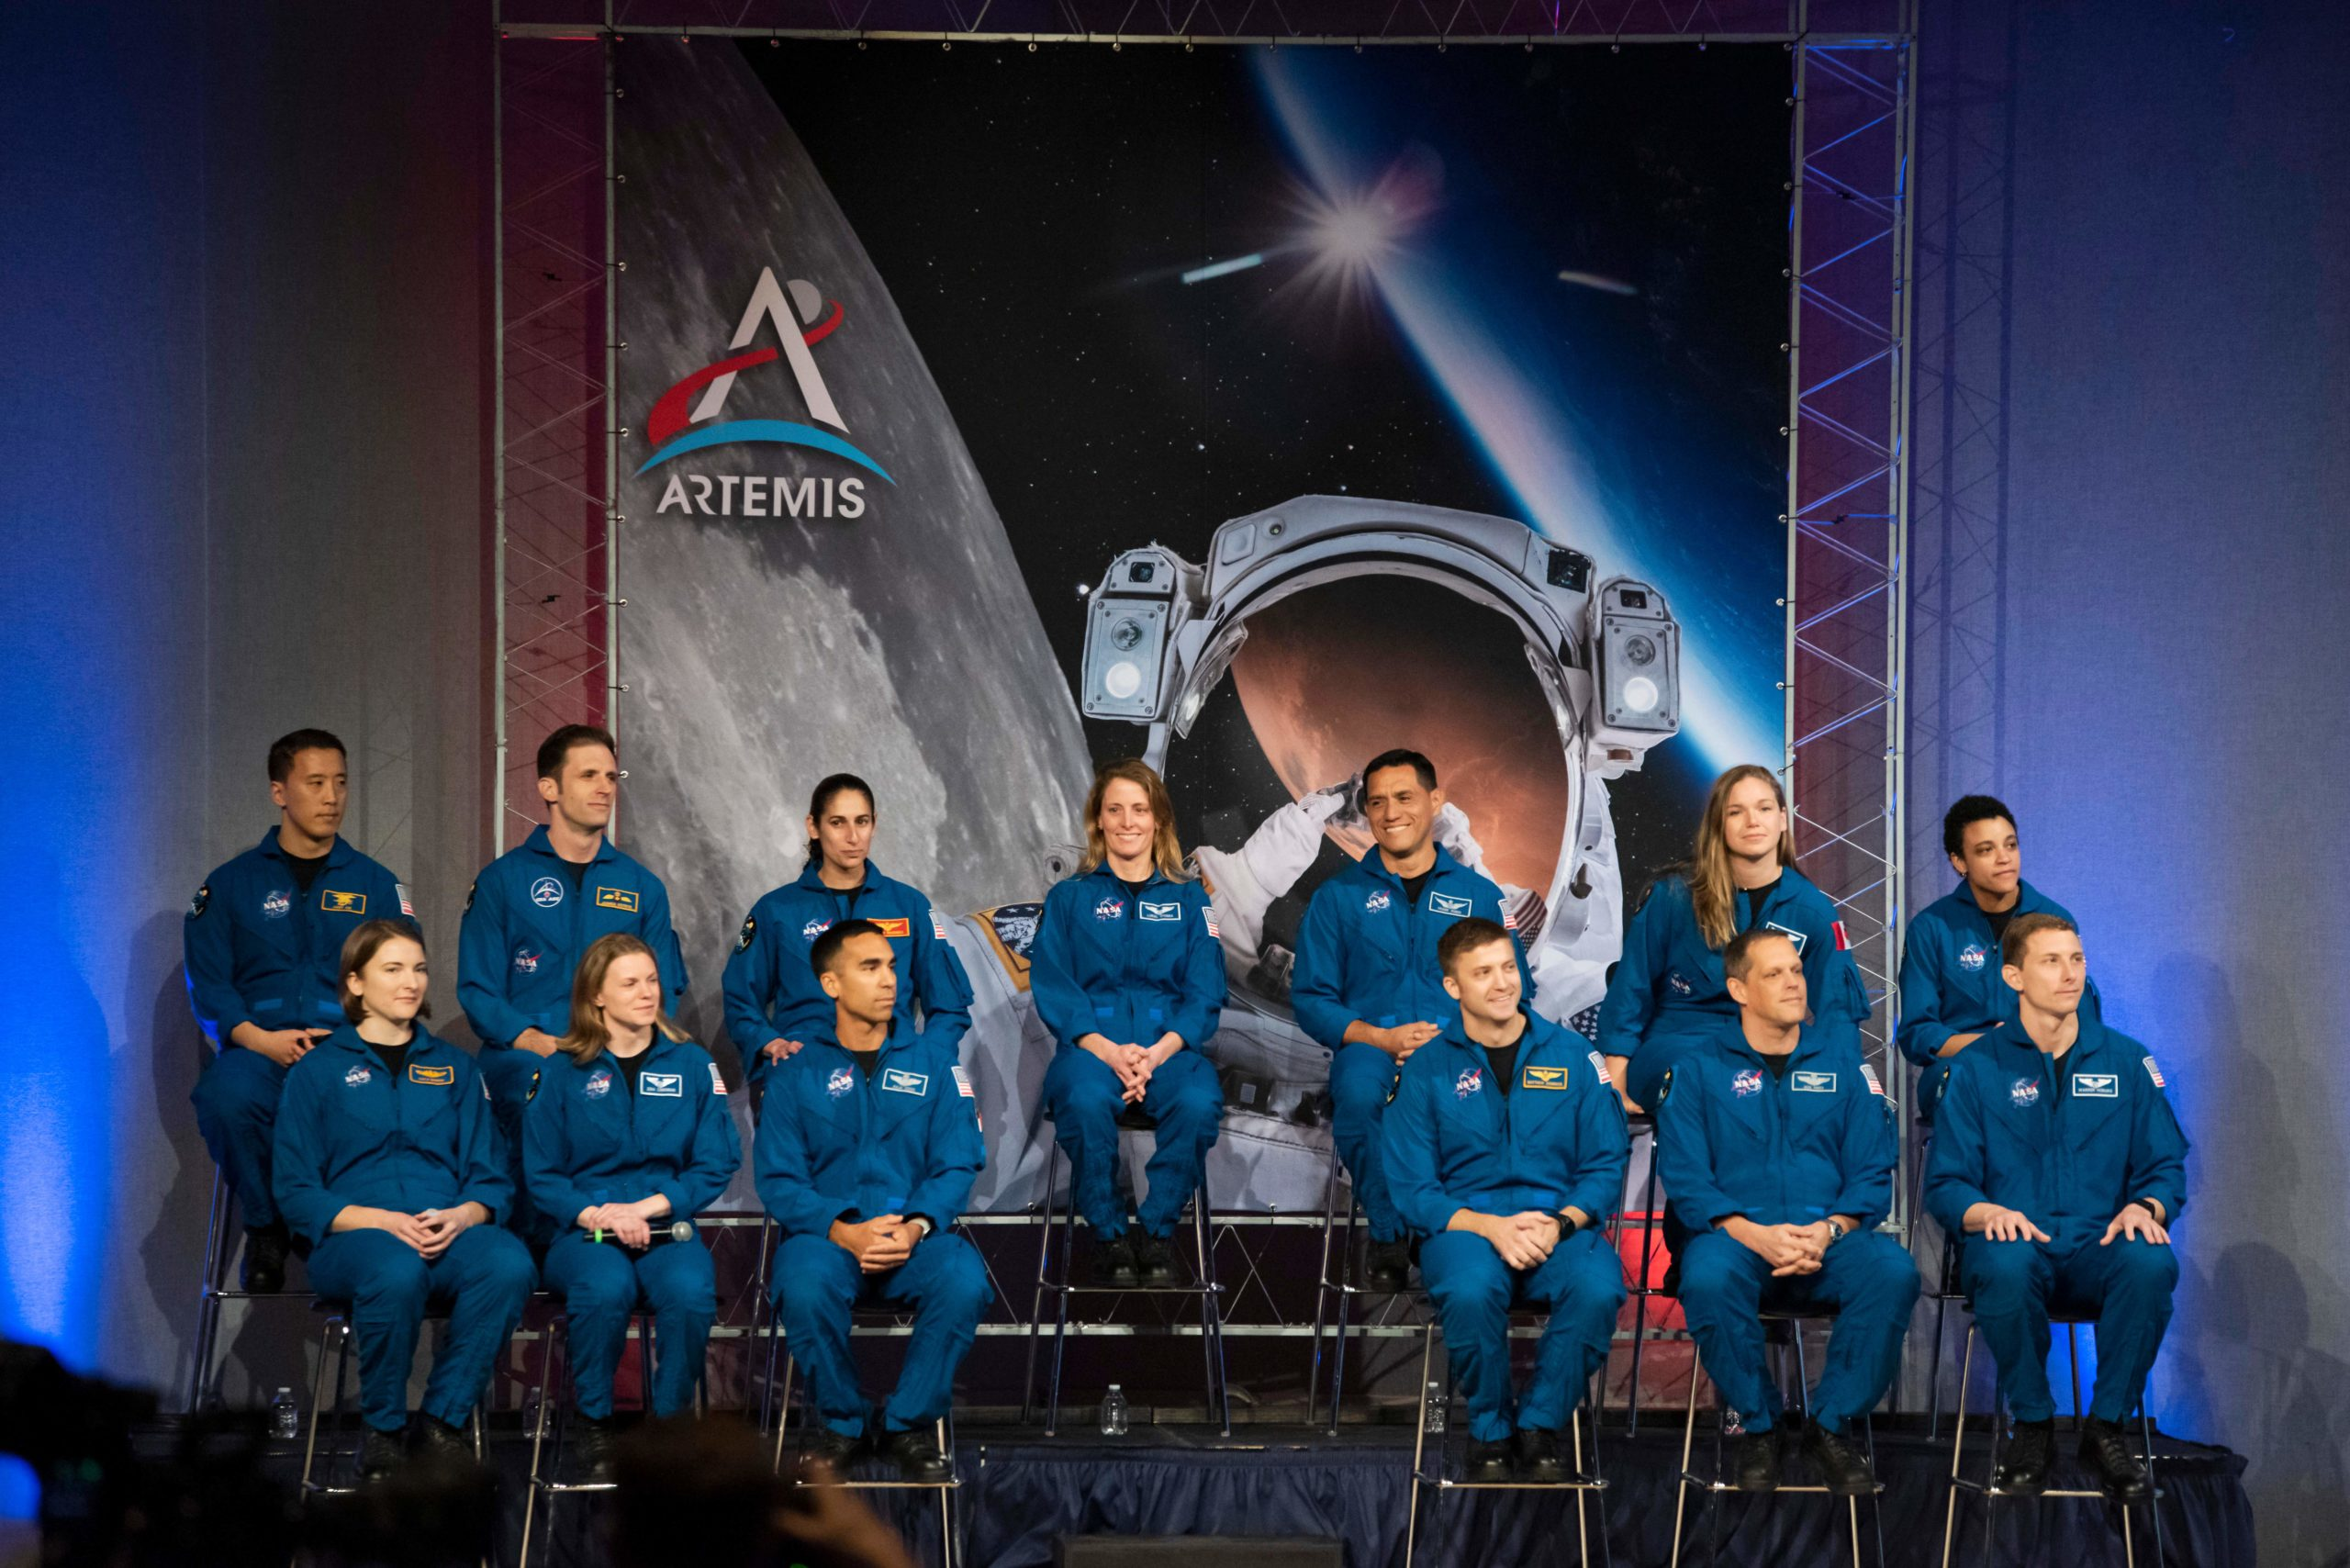 NASA and Canadian Space Agency (CSA) astronauts are introduced during their graduation at Johnson Space Center in Houston Texas. They are the first candidates to graduate under the Artemis program (Photo by MARK FELIX/AFP via Getty Images)